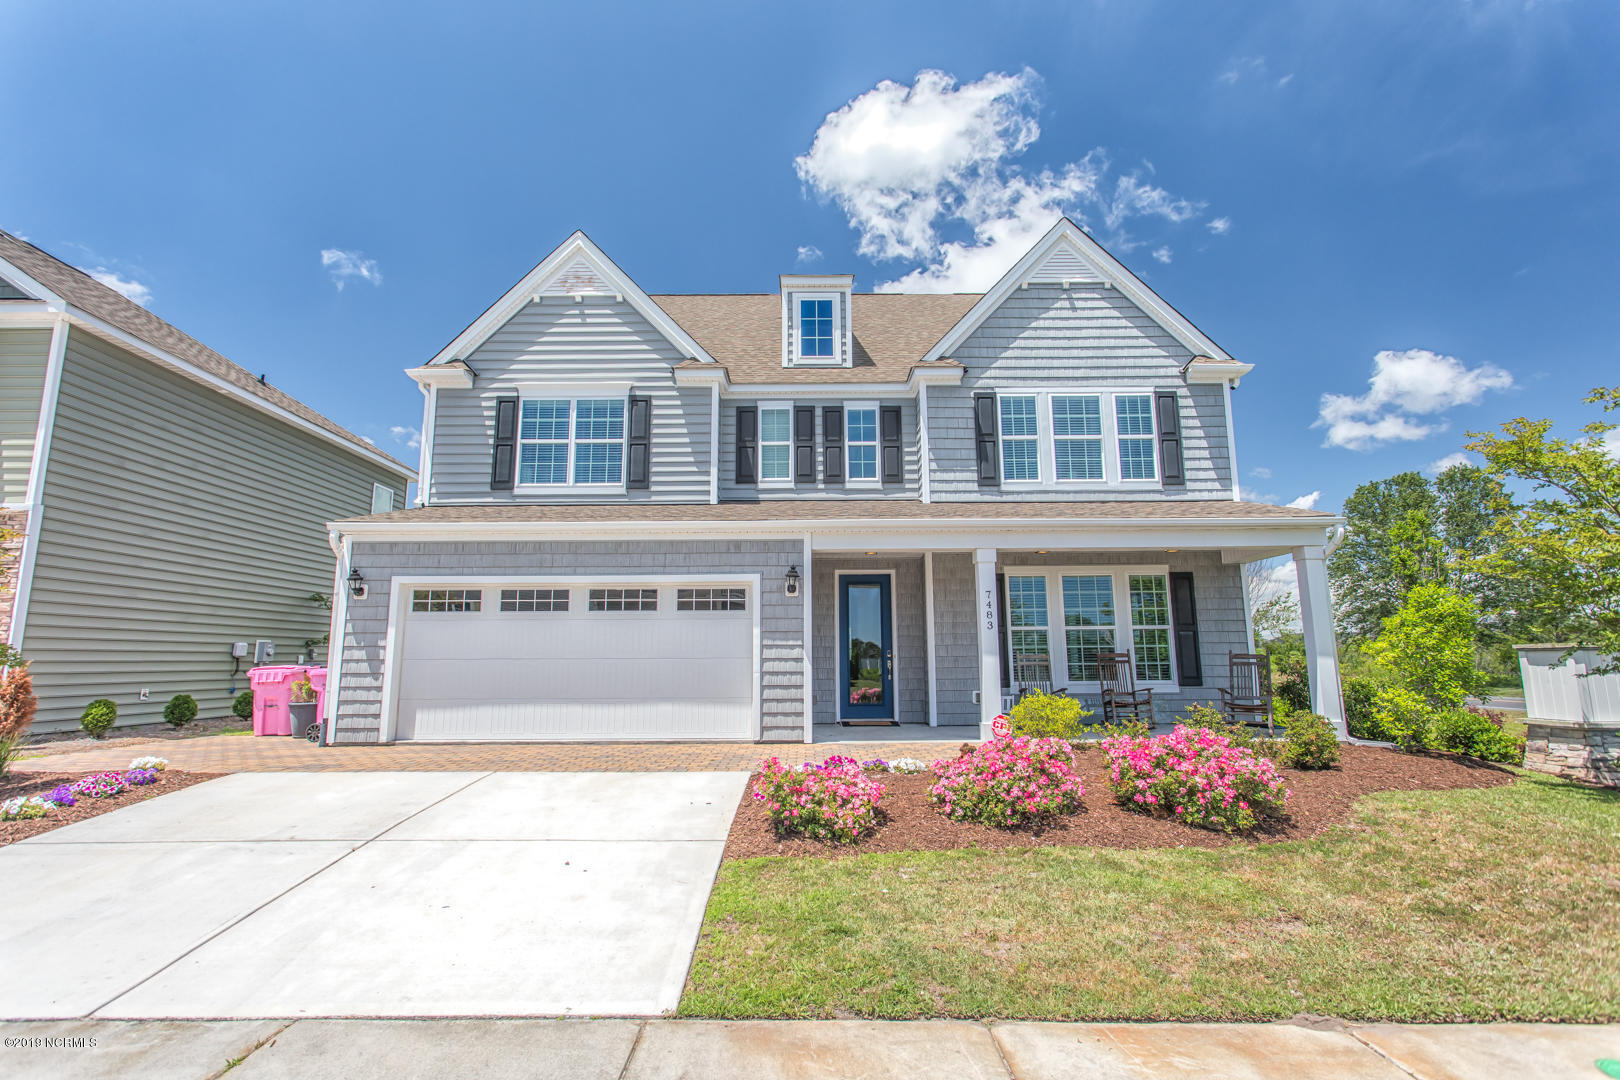 7483 Chipley Drive, Wilmington, North Carolina, 6 Bedrooms Bedrooms, 16 Rooms Rooms,4 BathroomsBathrooms,Single family residence,For sale,Chipley,100164014